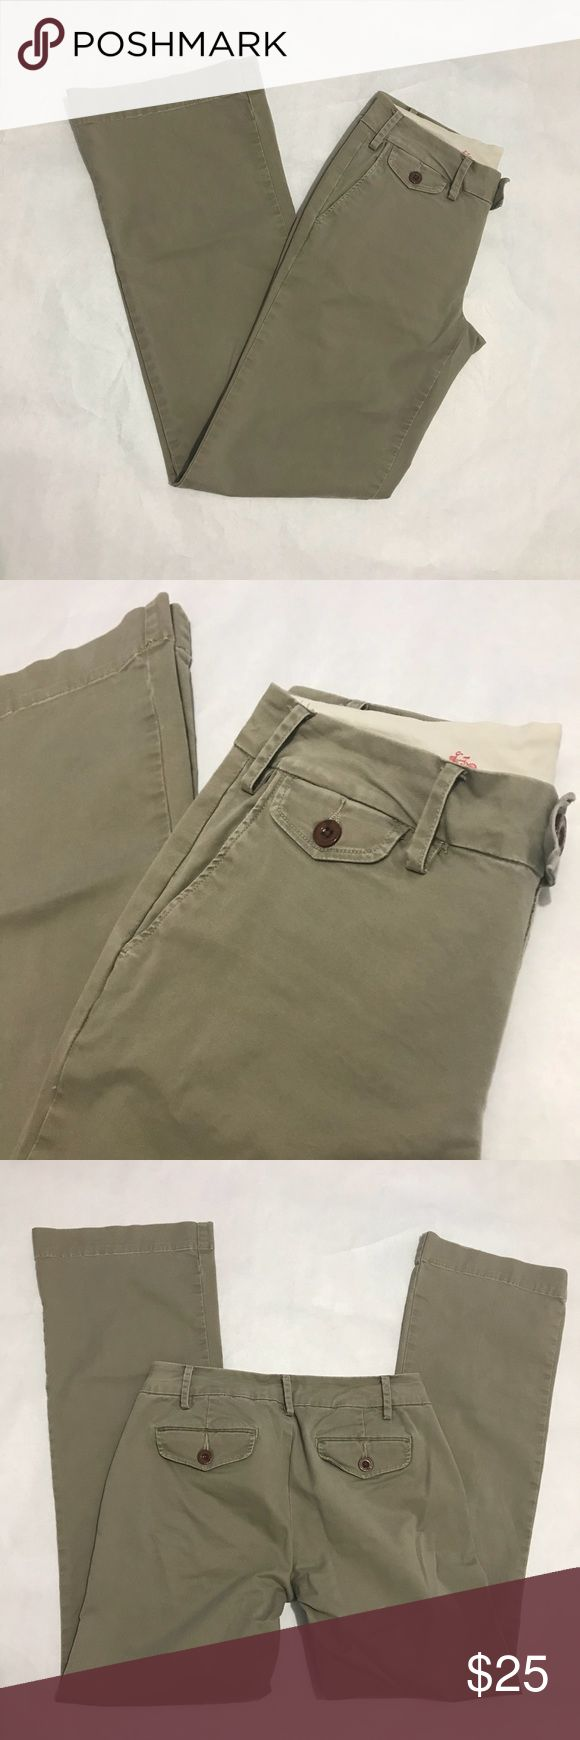 Paper Boy (Anthropologie brand) khakis size 2 This pair of khakis from Paper Boy (a brand sold at Anthropologie) is in EUC with no holes, tears, or stains. Bundle with other items from my closet for the best deal! Paperboy Clothing Pants Boot Cut & Flare